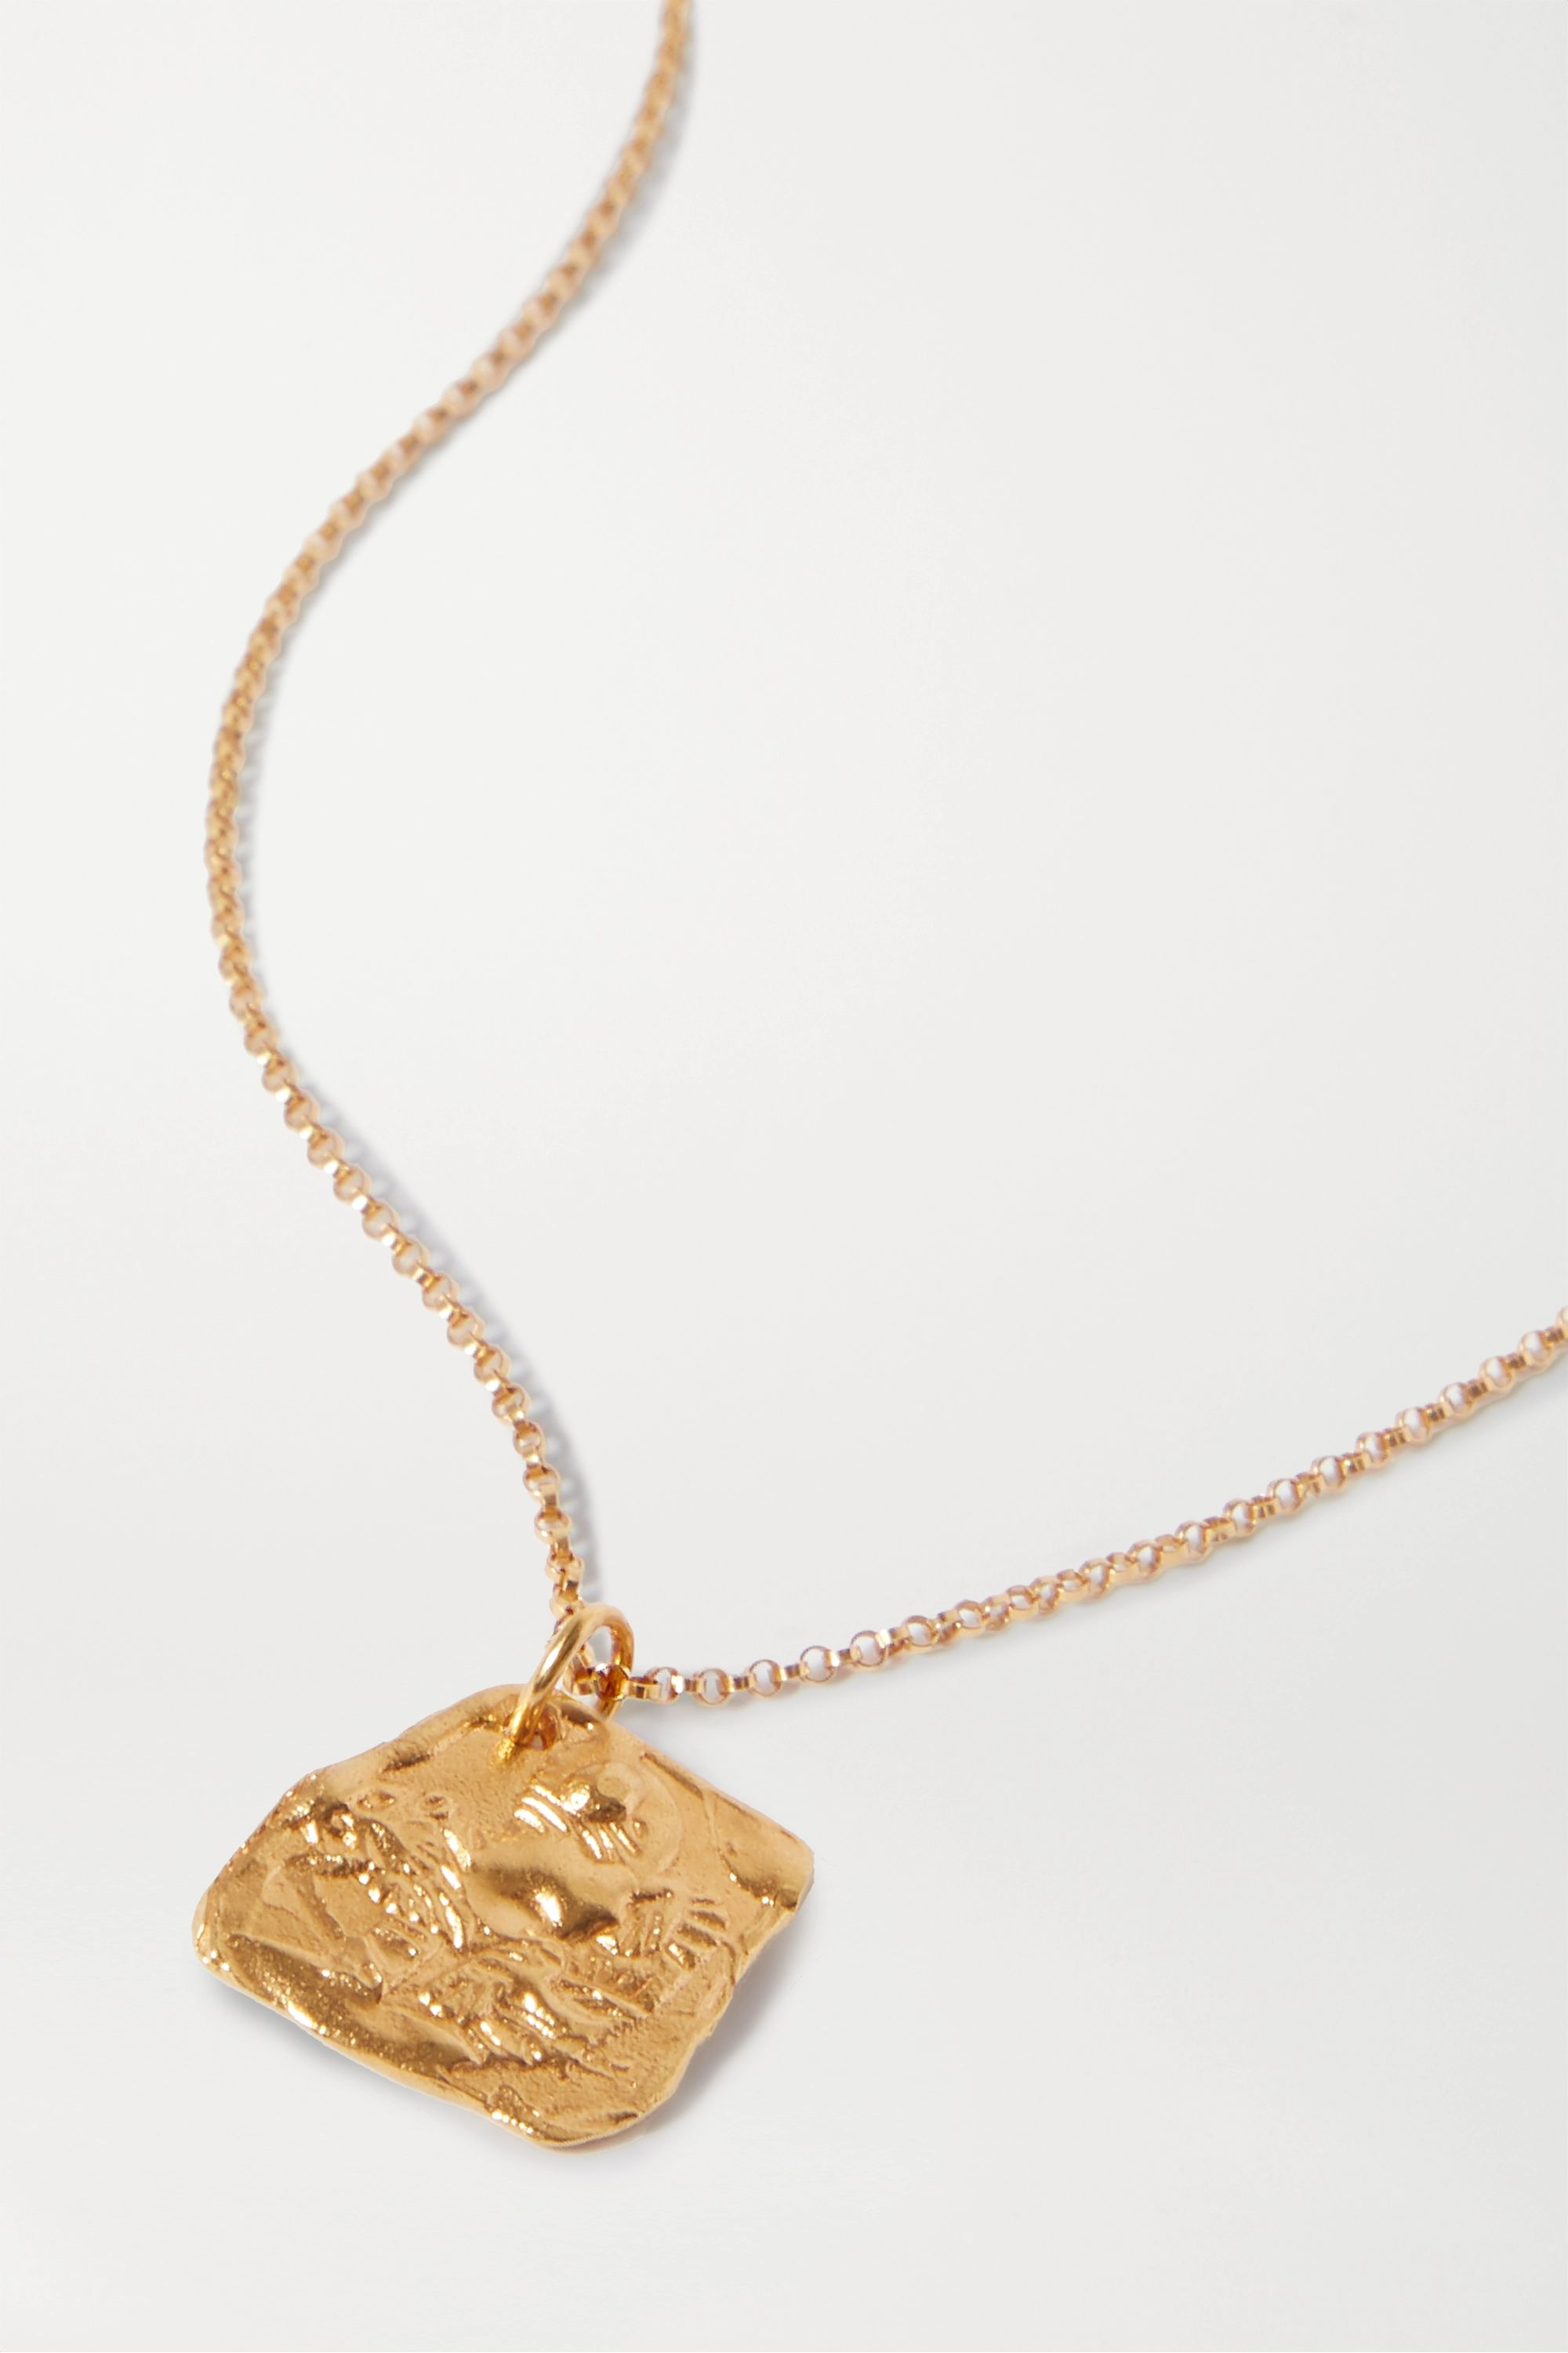 Alighieri Year of the Tiger gold-plated necklace